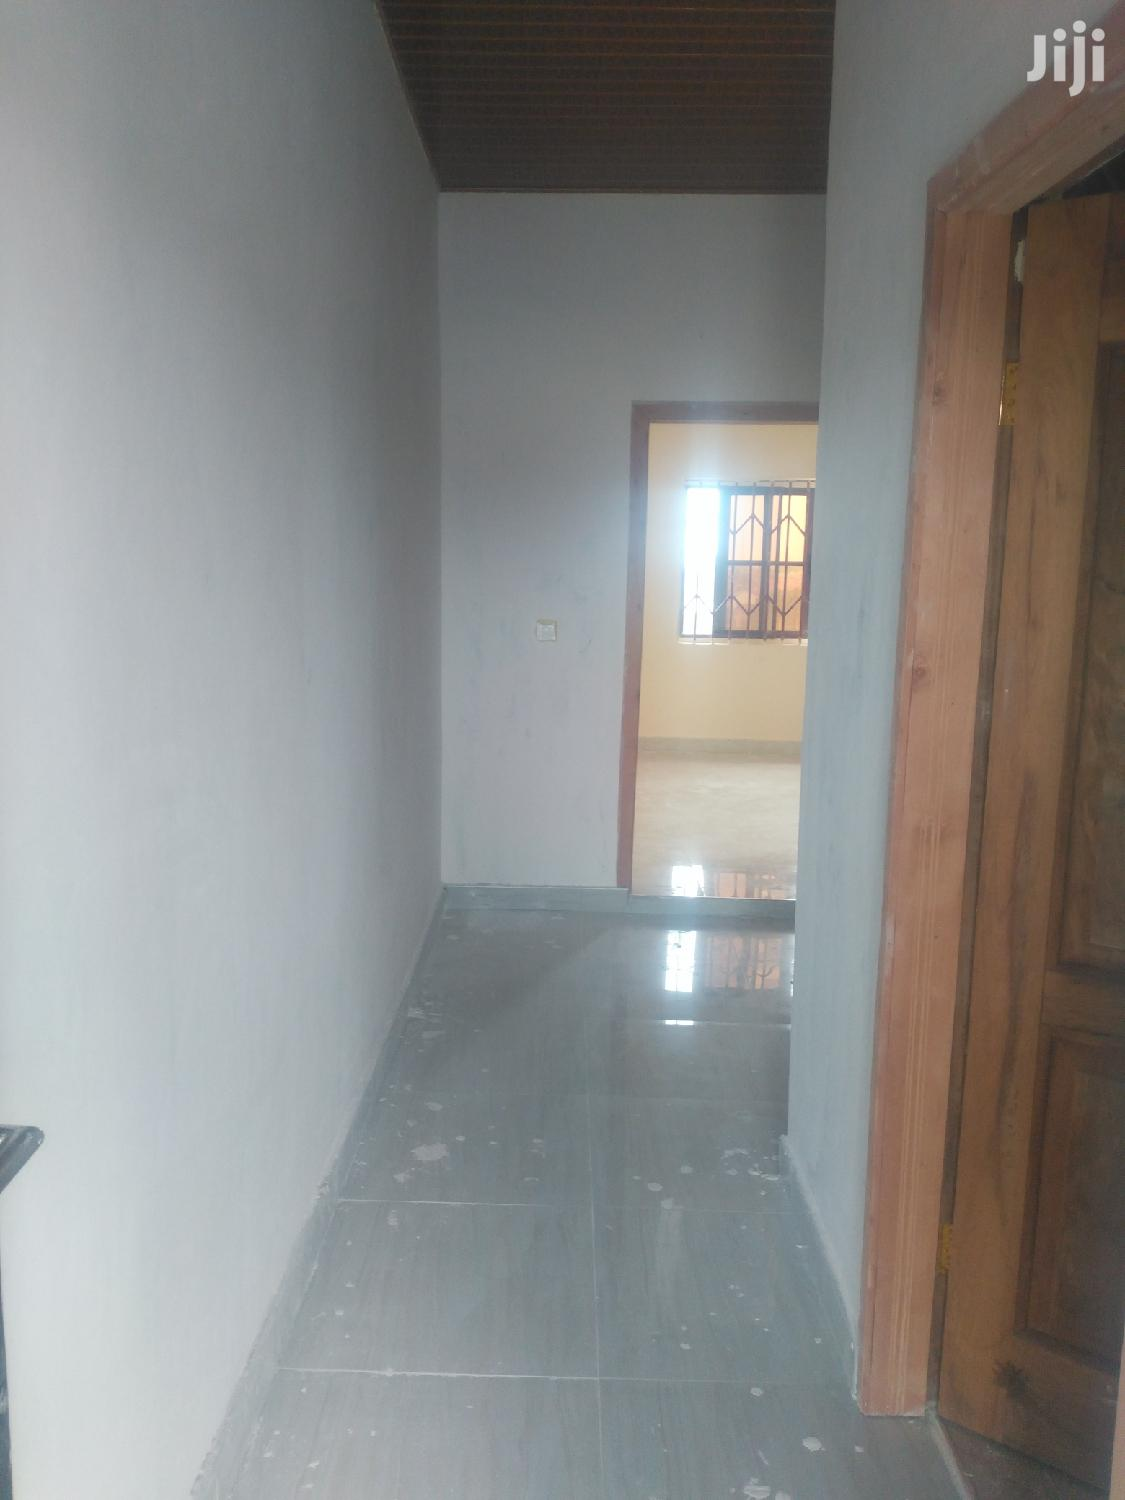 New Executive Single Room S/C At West Hills Mall